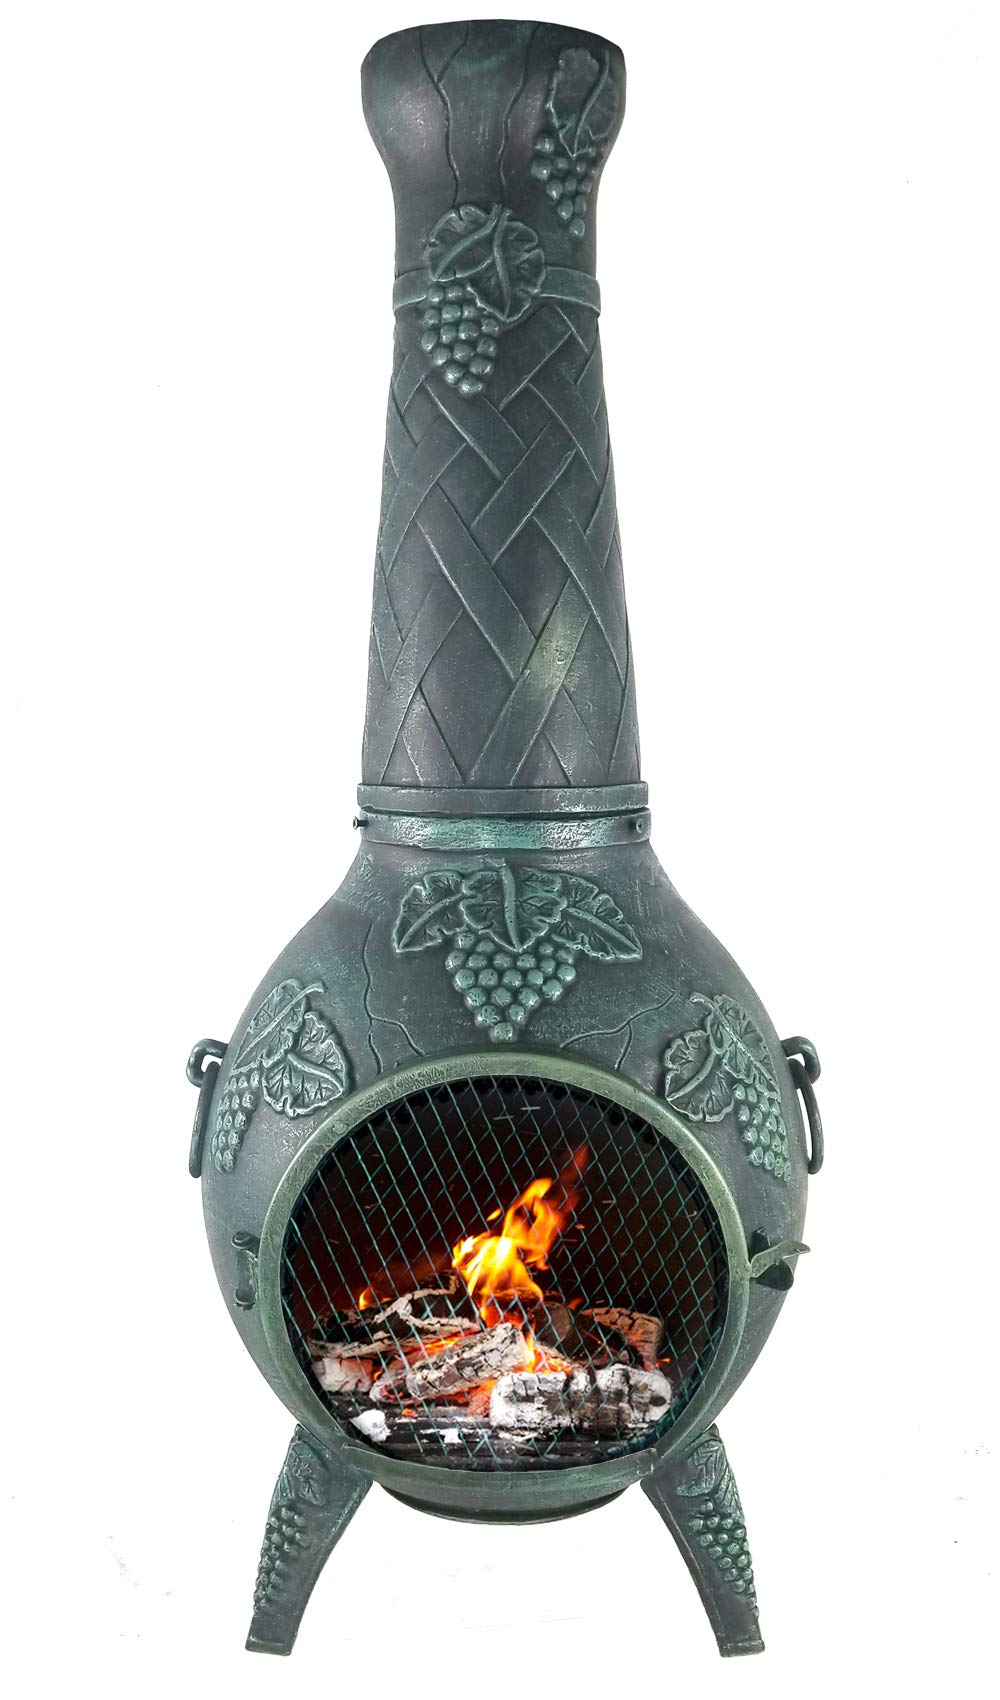 The Blue Rooster CAST Aluminum Grape Chiminea with Gas and a 10' Hose in Antique Green. Also Comes with a Free Year Round Cover. by The Blue Rooster